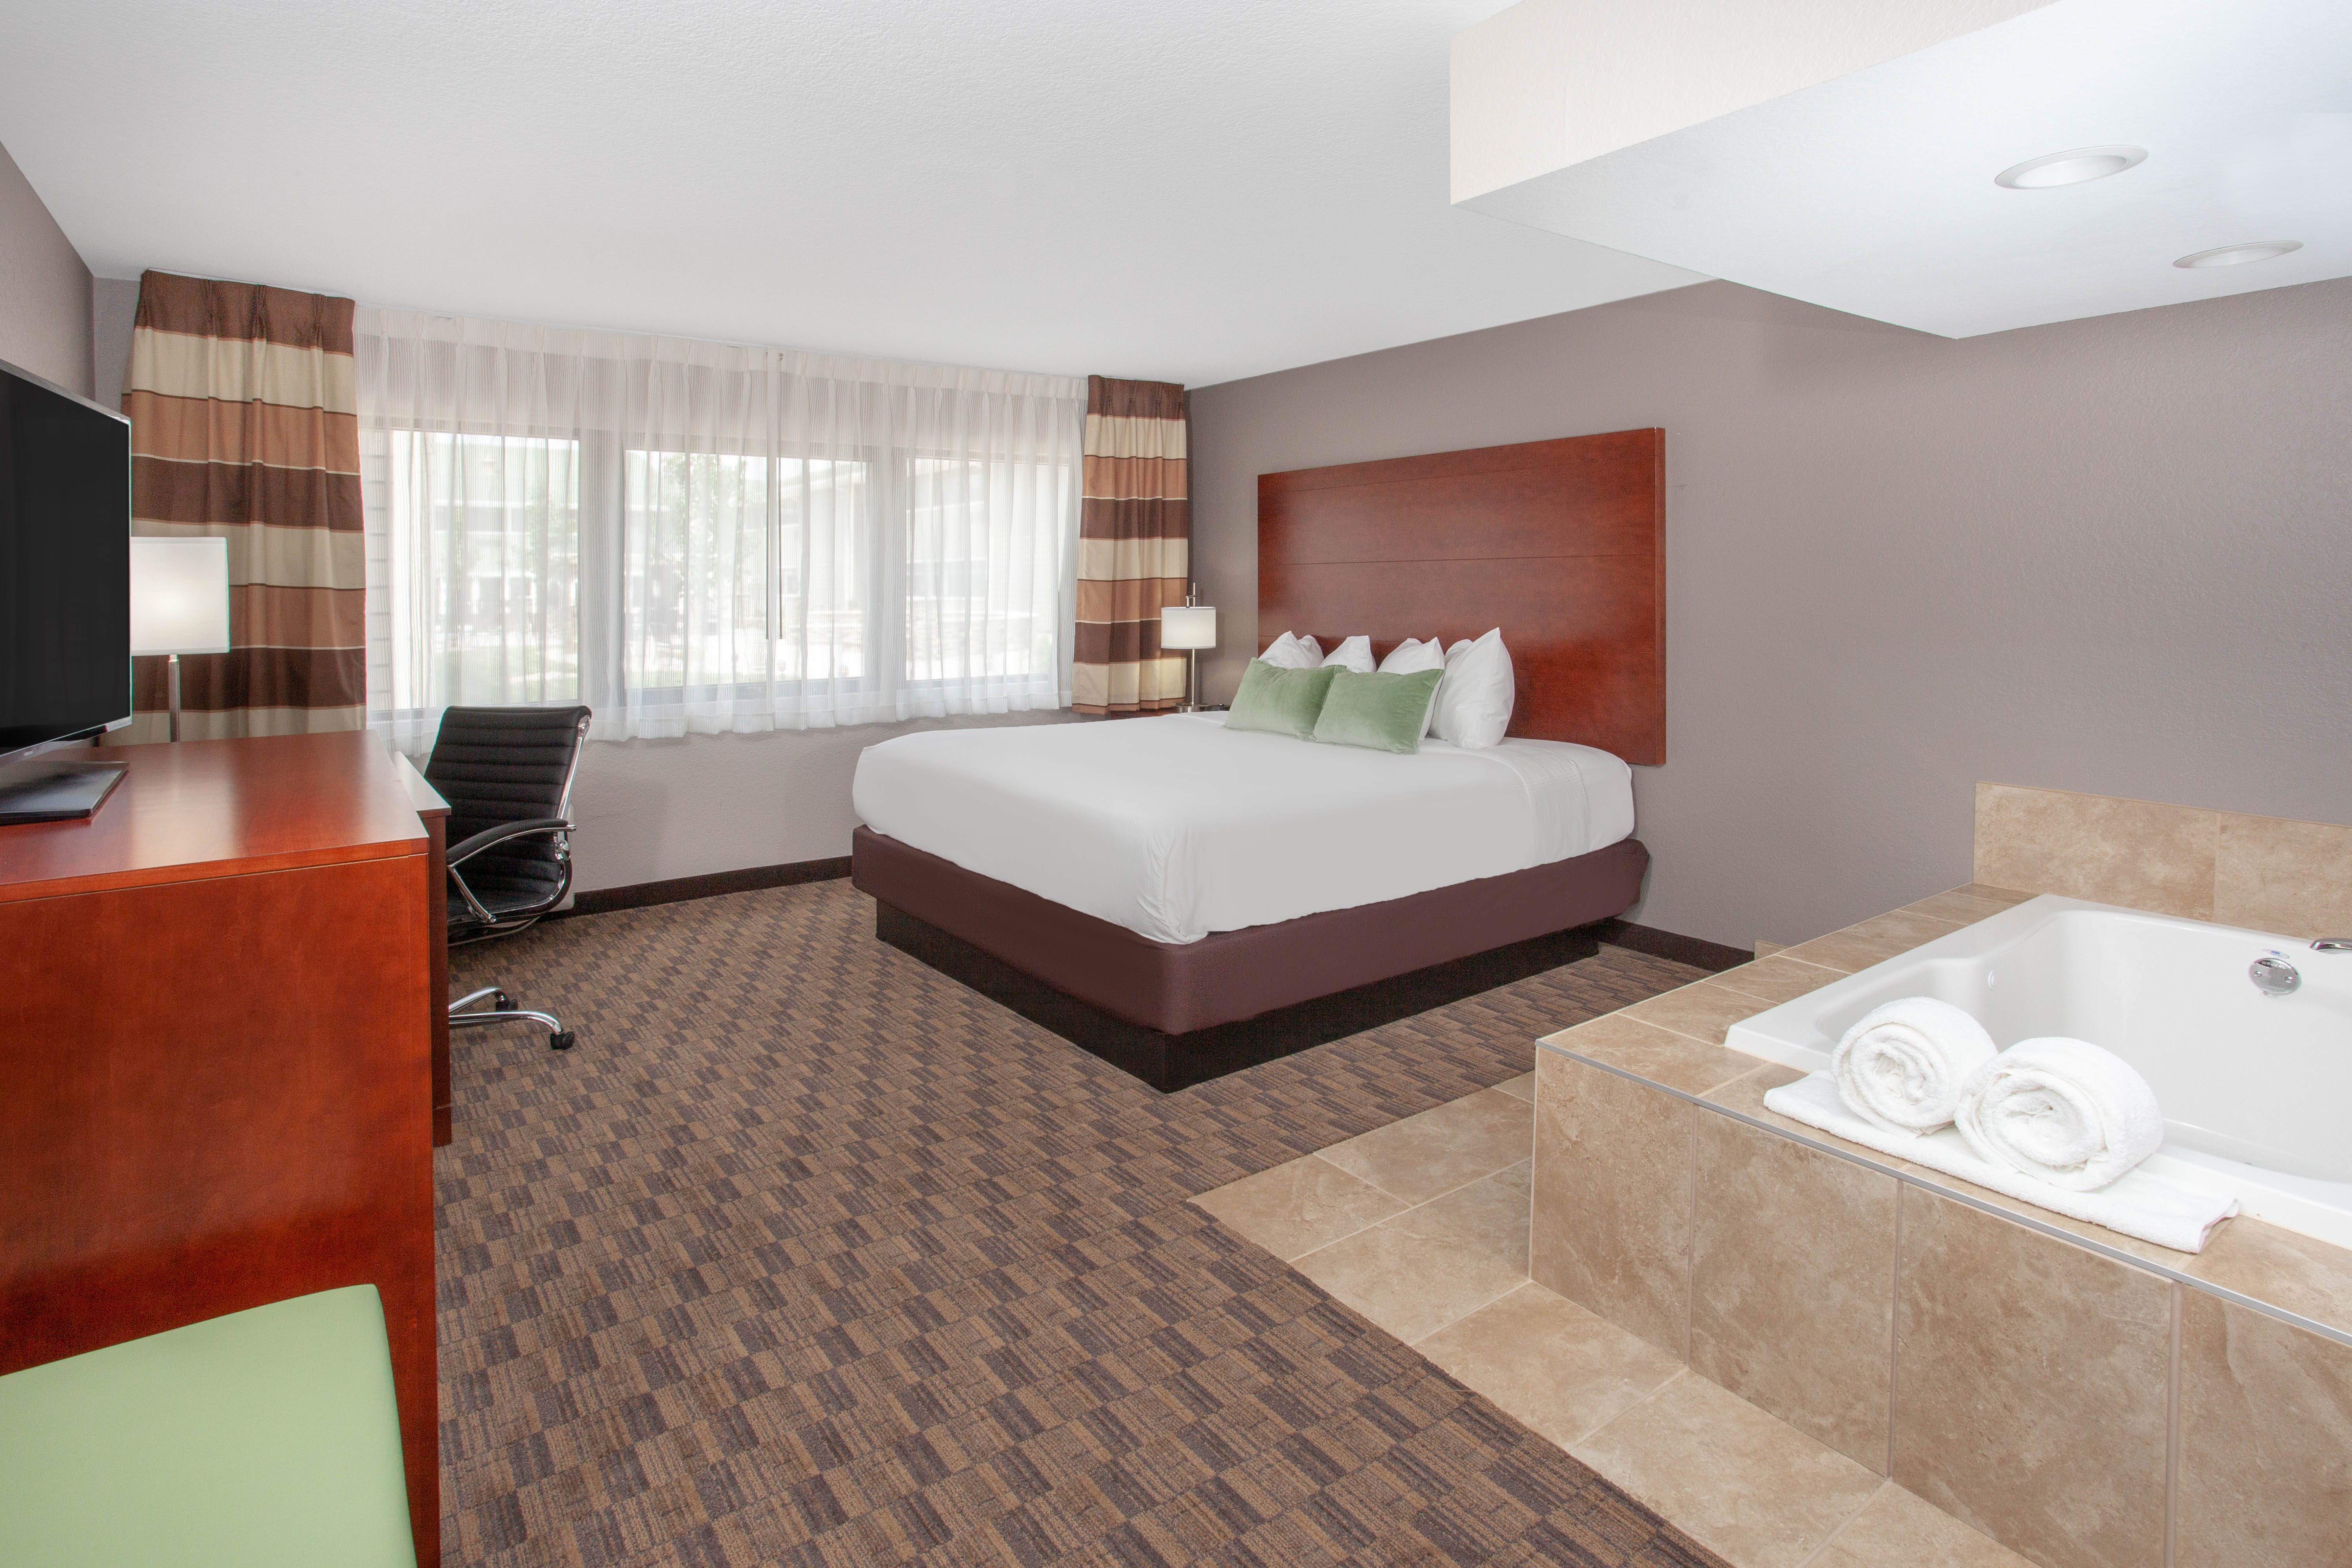 http://memorialcoliseum.com/images/Images/Where_to_Stay_Images/Wyndham_Garden/1KN_KIngSpa.jpg